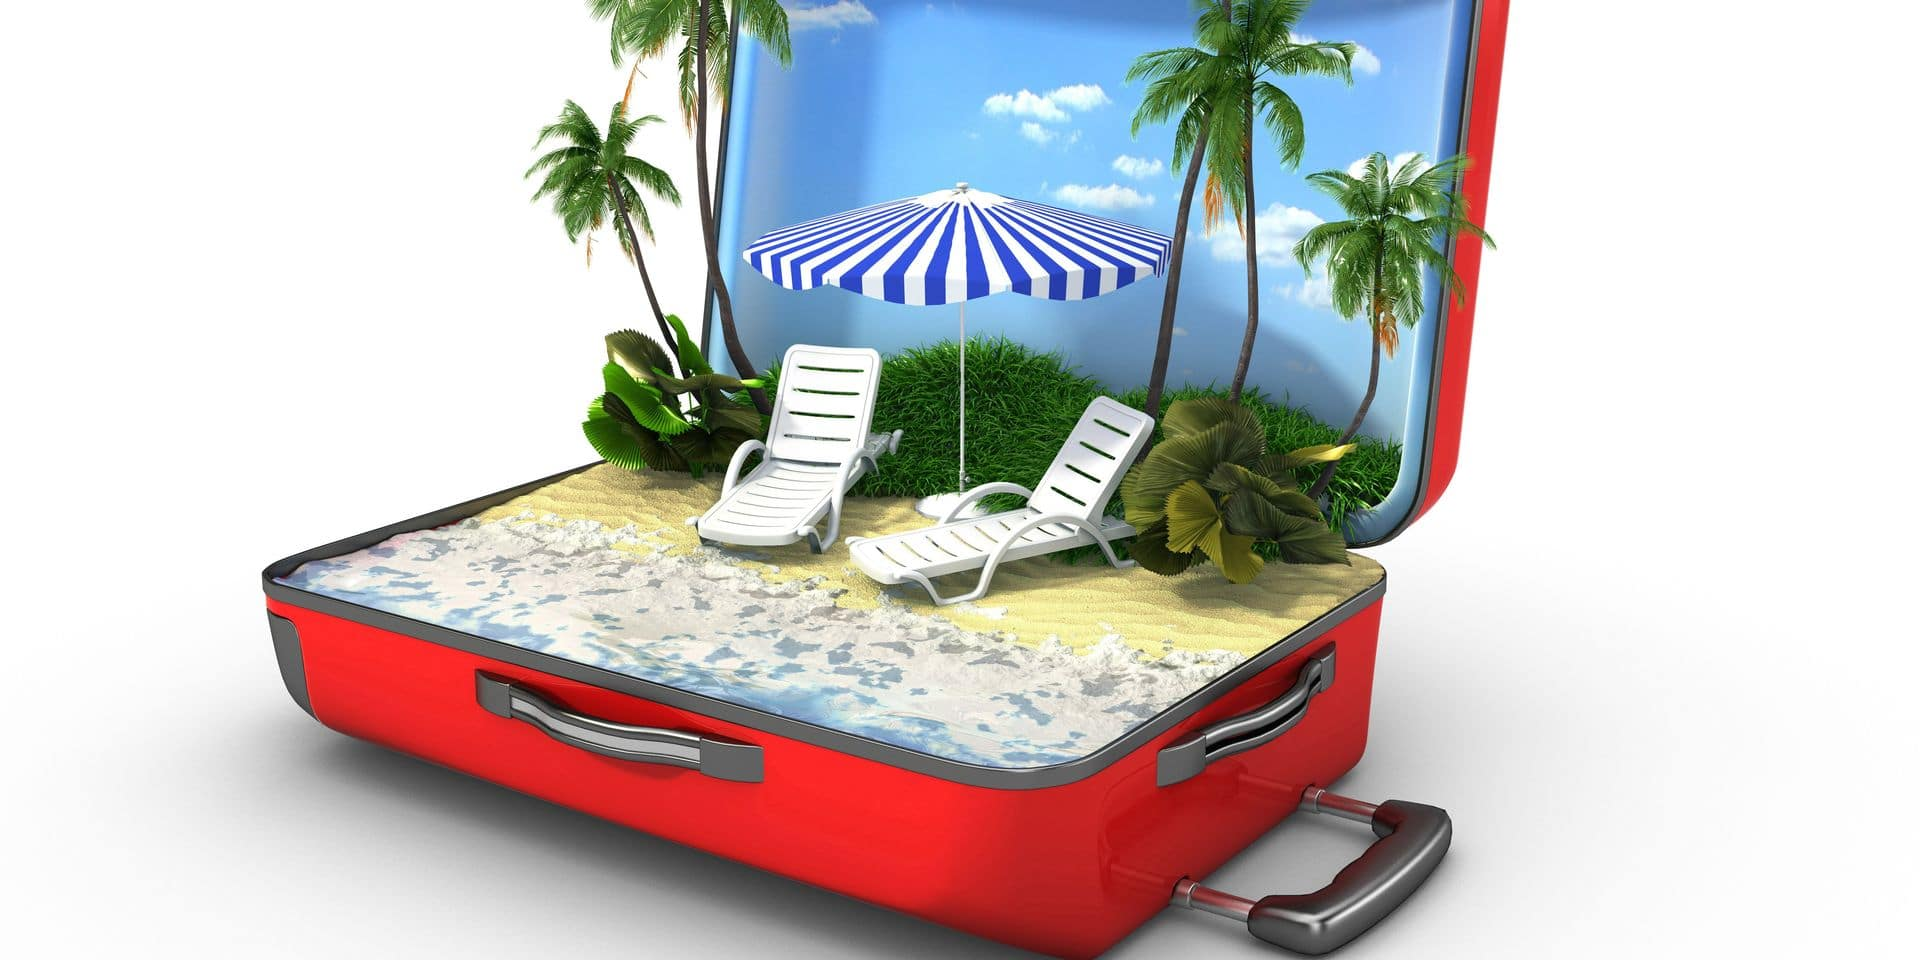 Open,Baggage,,Vacation,Concept